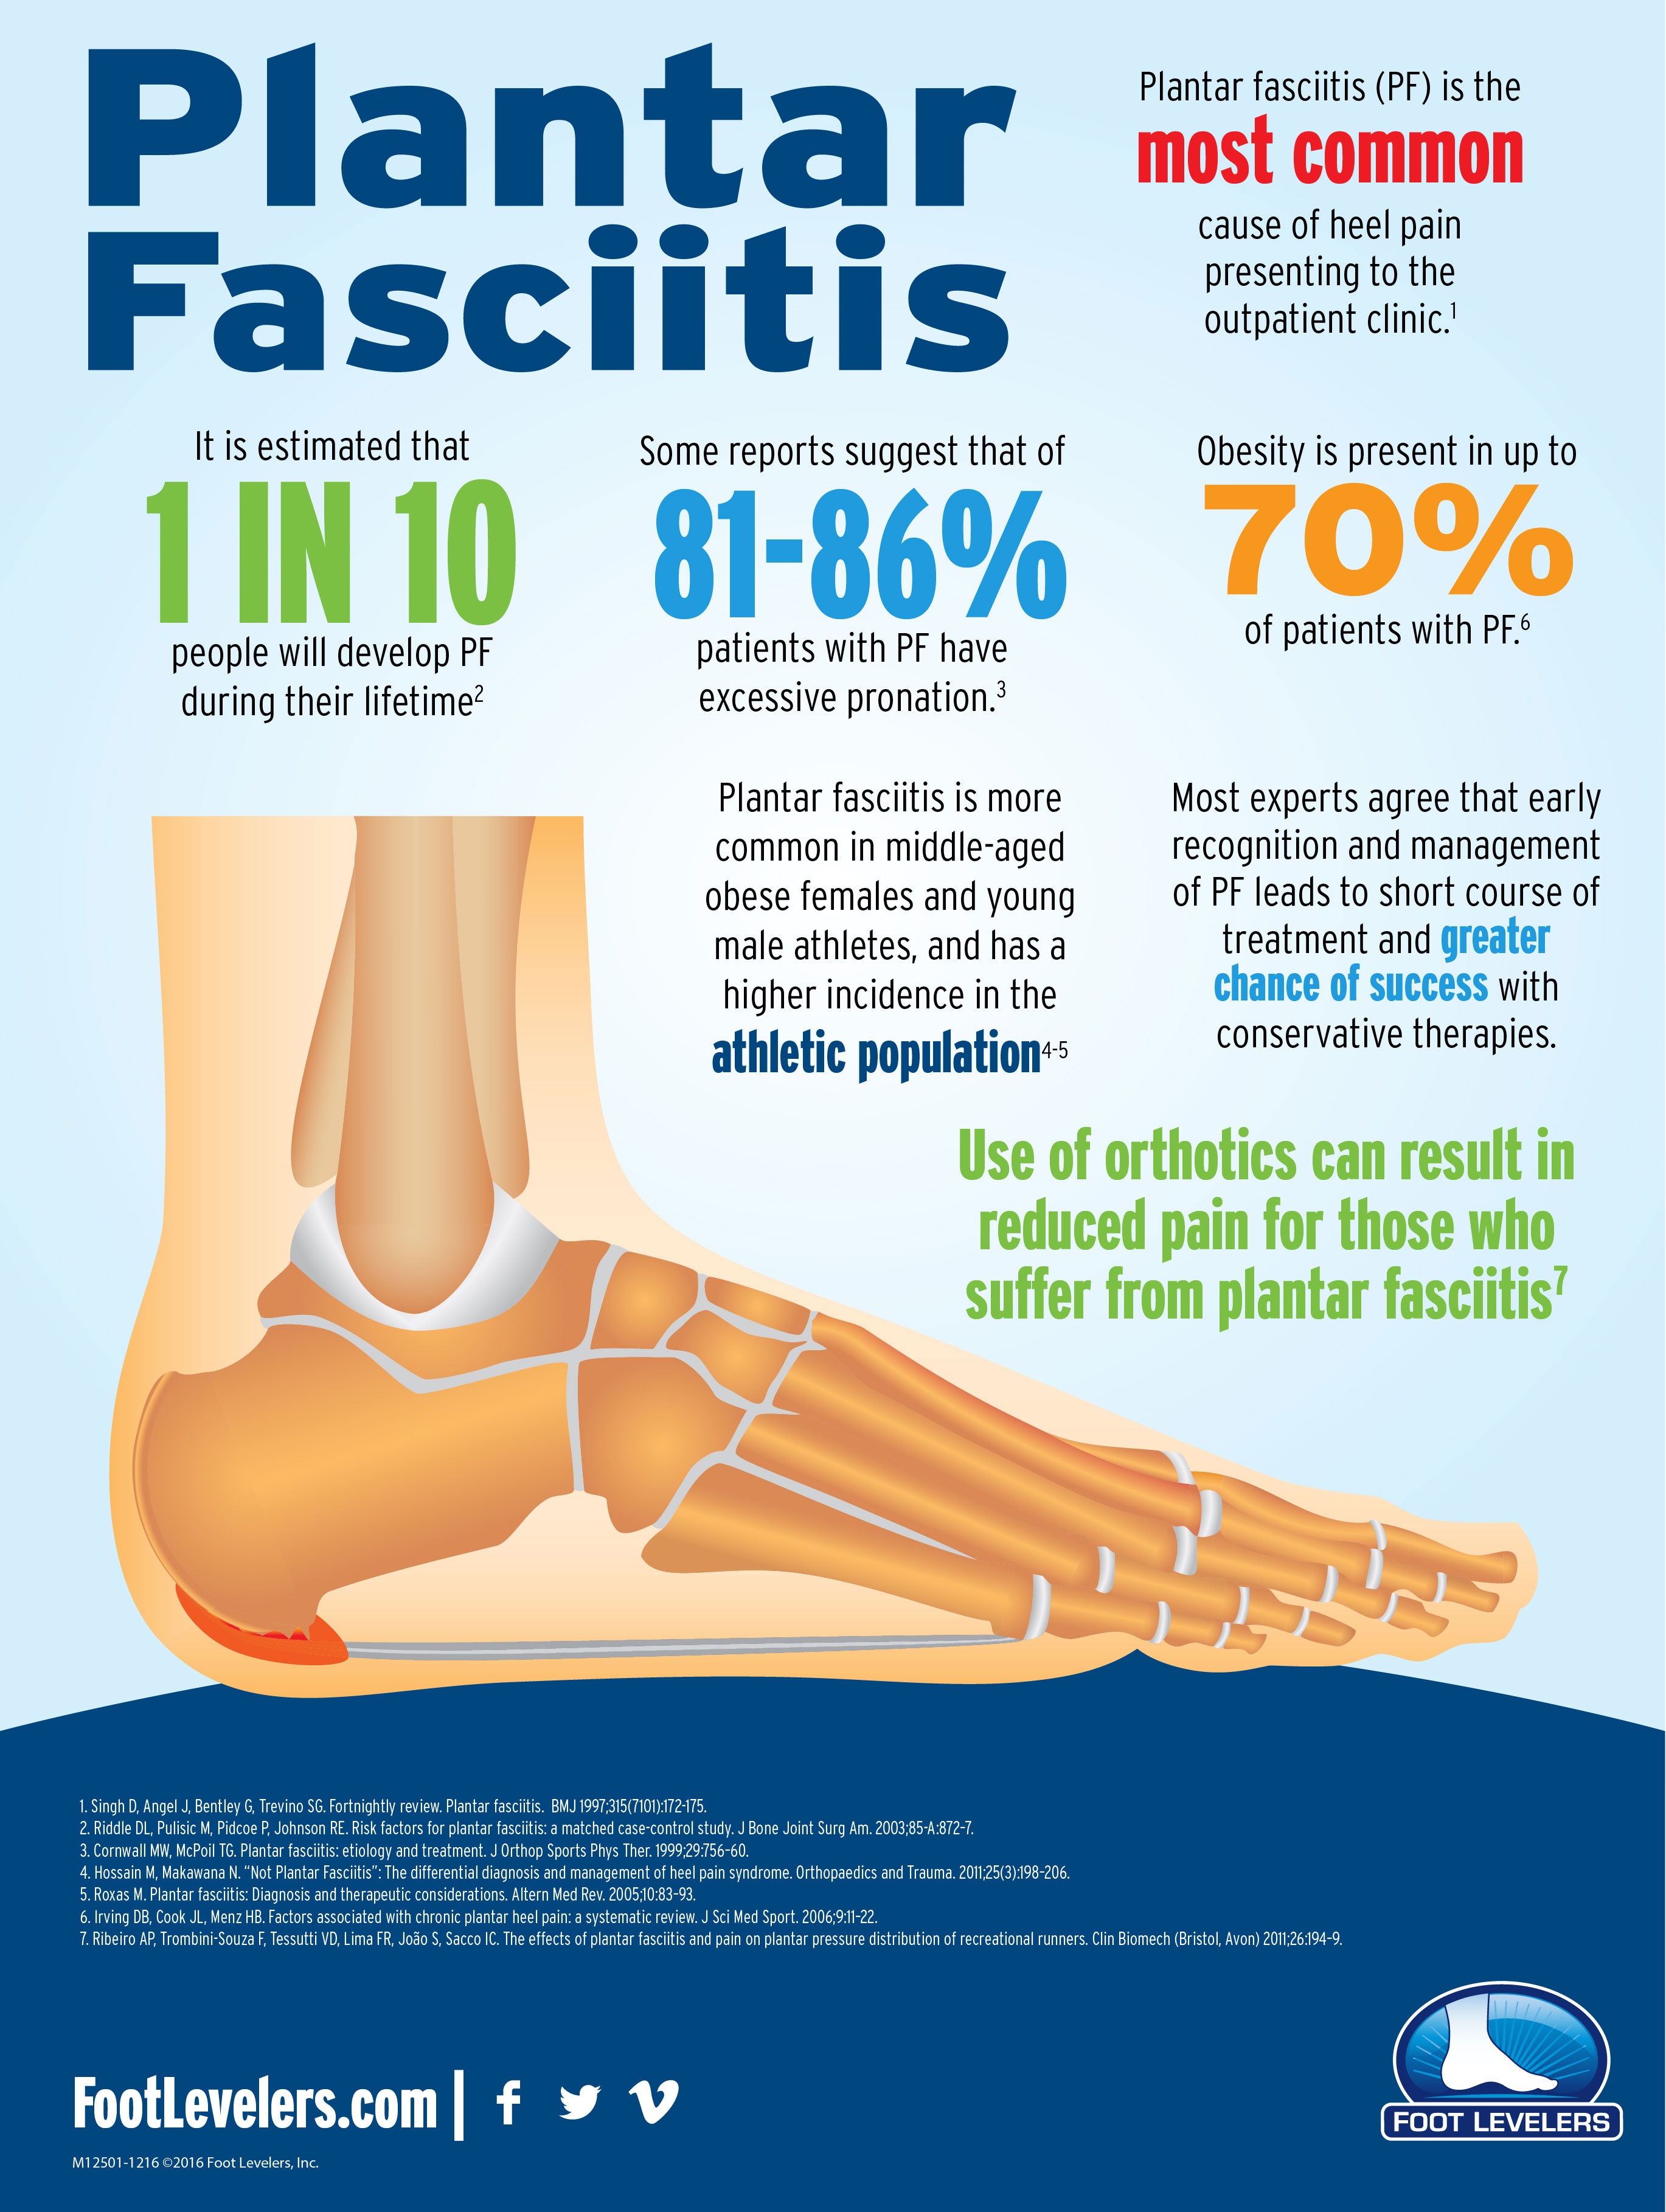 About Plantar Fasciitis